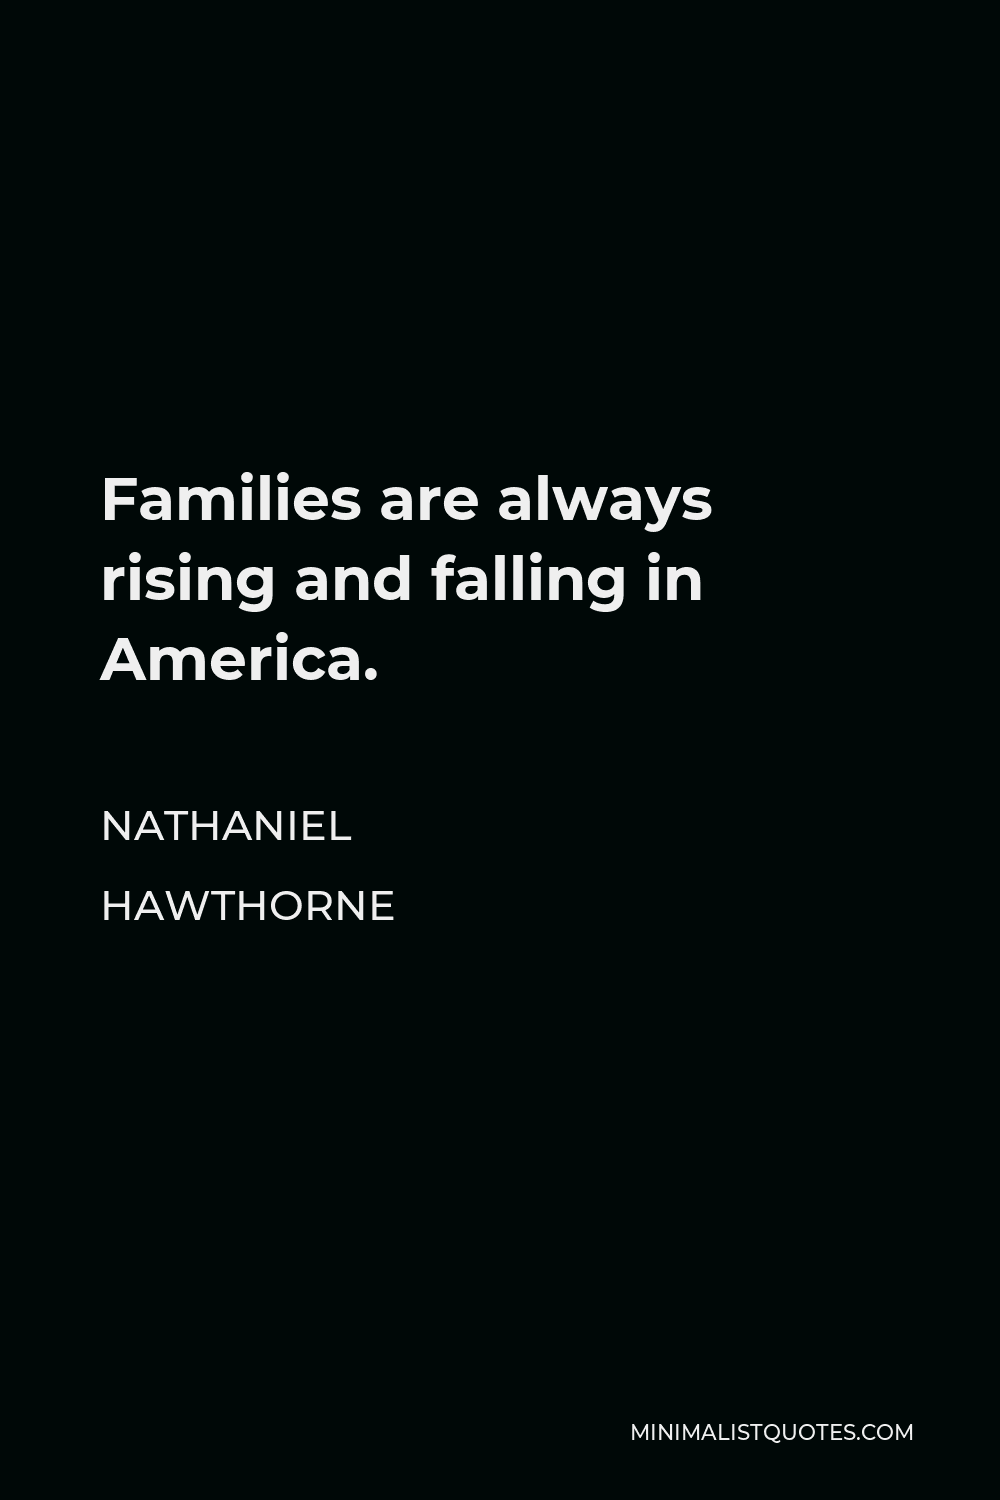 Nathaniel Hawthorne Quote - Families are always rising and falling in America.